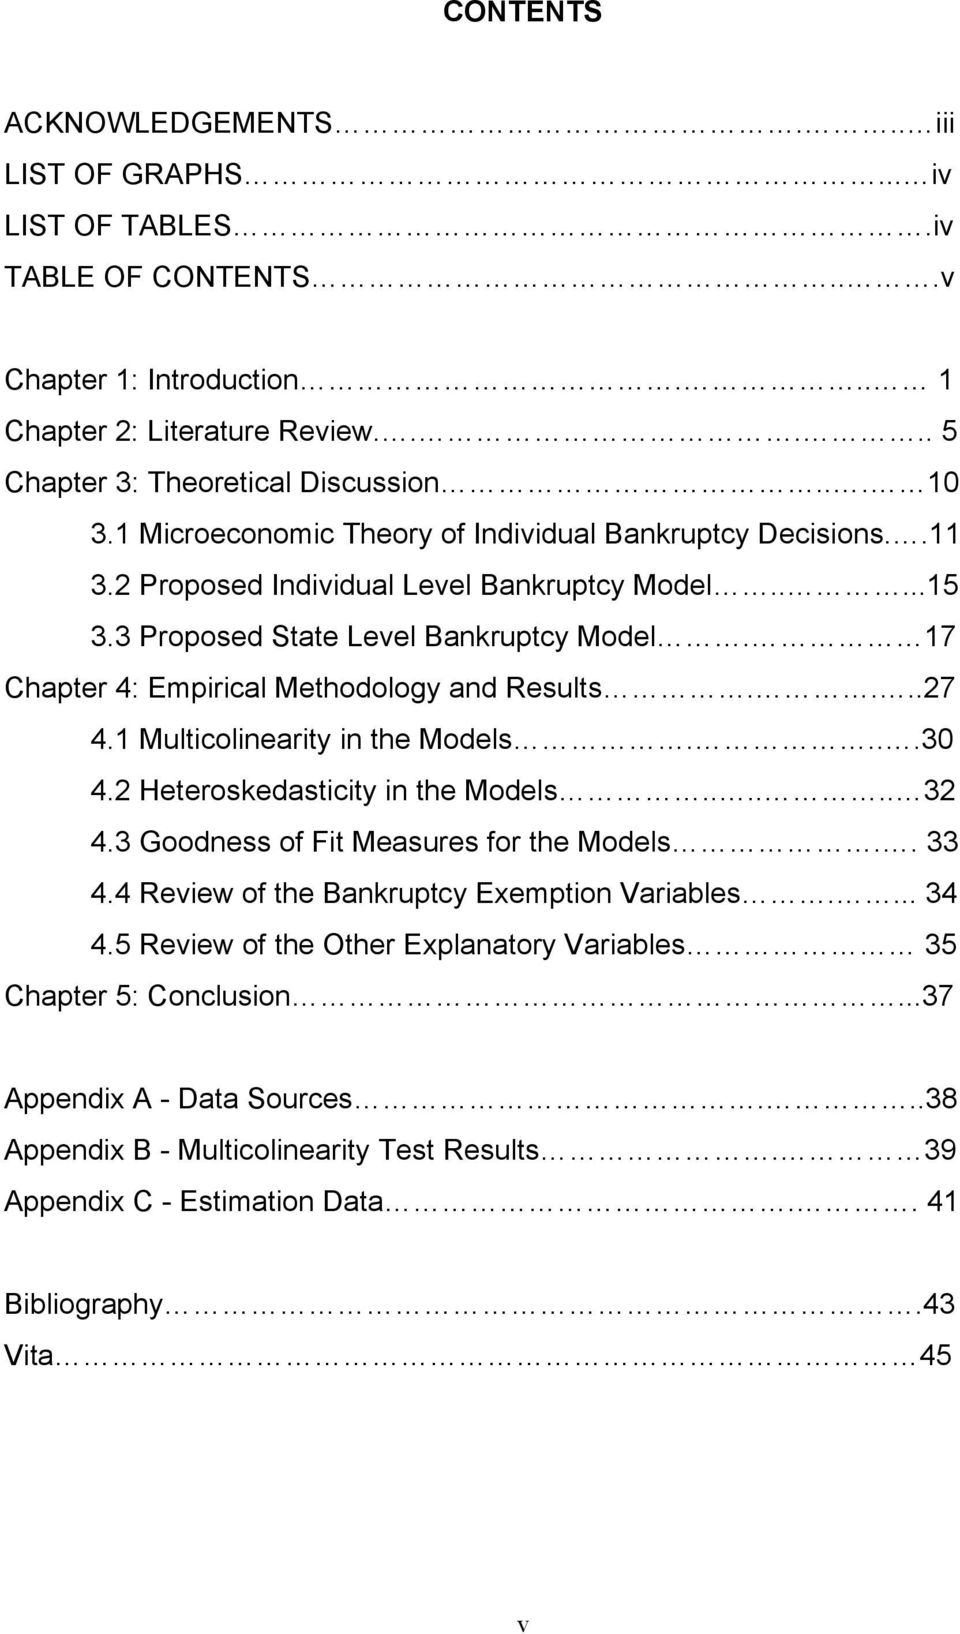 17 Chapter 4: Empirical Methodology and Results....27 4.1 Multicolinearity in the Models....30 4.2 Heteroskedasticity in the Models...... 32 4.3 Goodness of Fit Measures for the Models.. 33 4.